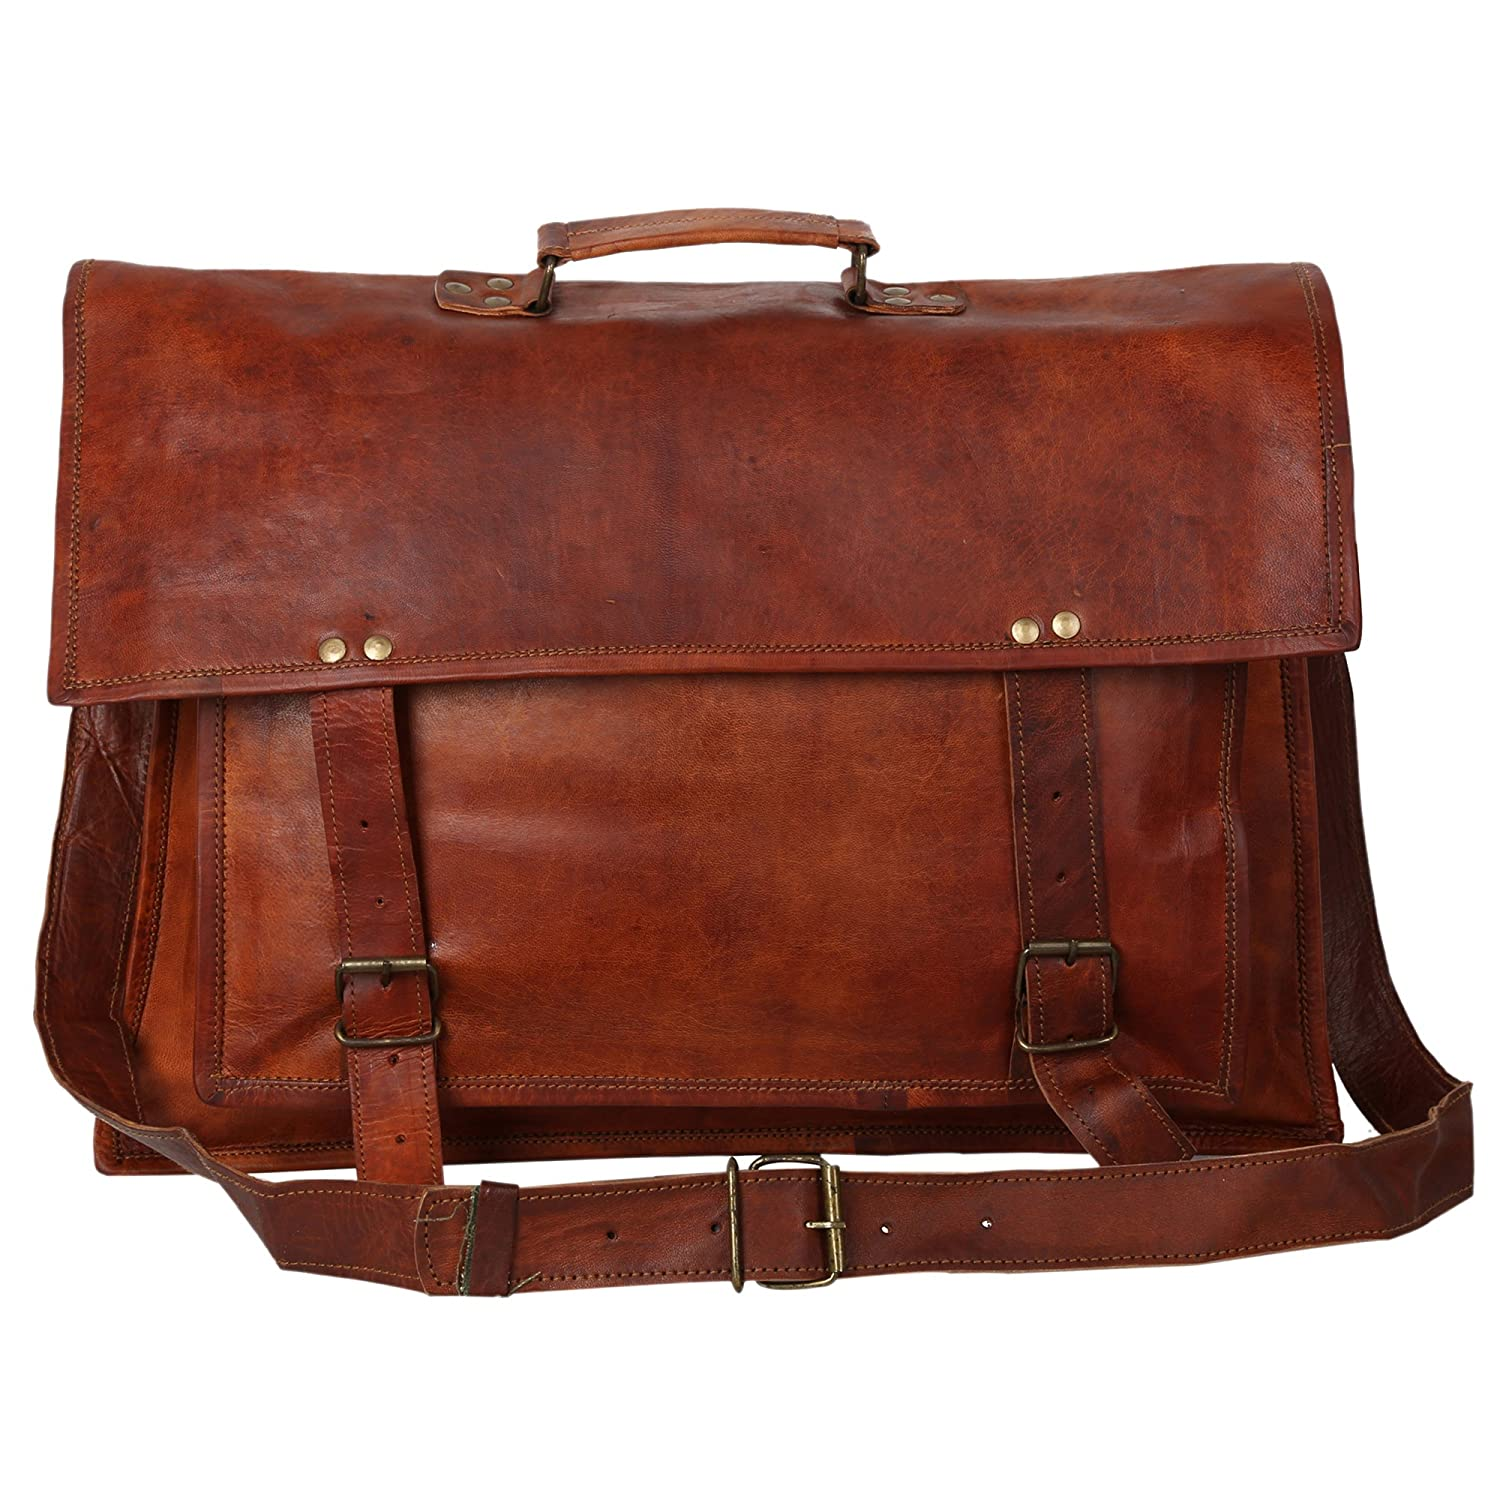 18x13 inch Leather Vintage Rustic Top Handel Messenger Courier Bag Gift Men Women ~ Business Work Briefcase Carry Laptop Computer Book Handmade Rugged & Distressed ~ Everyday Office College School Sparsh International